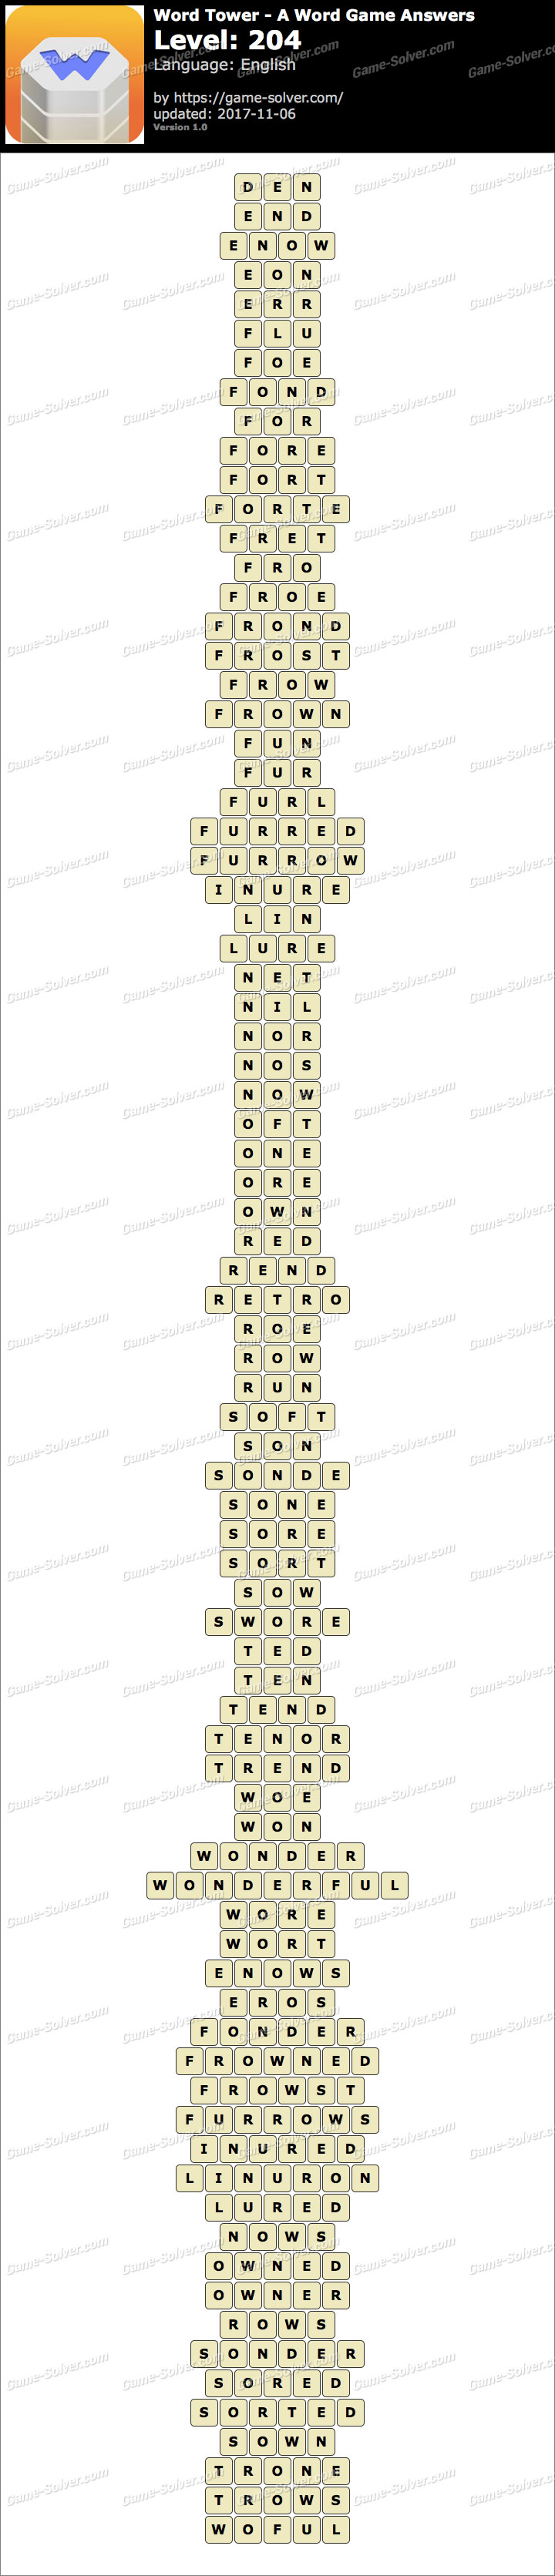 Word Tower Level 204 Answers